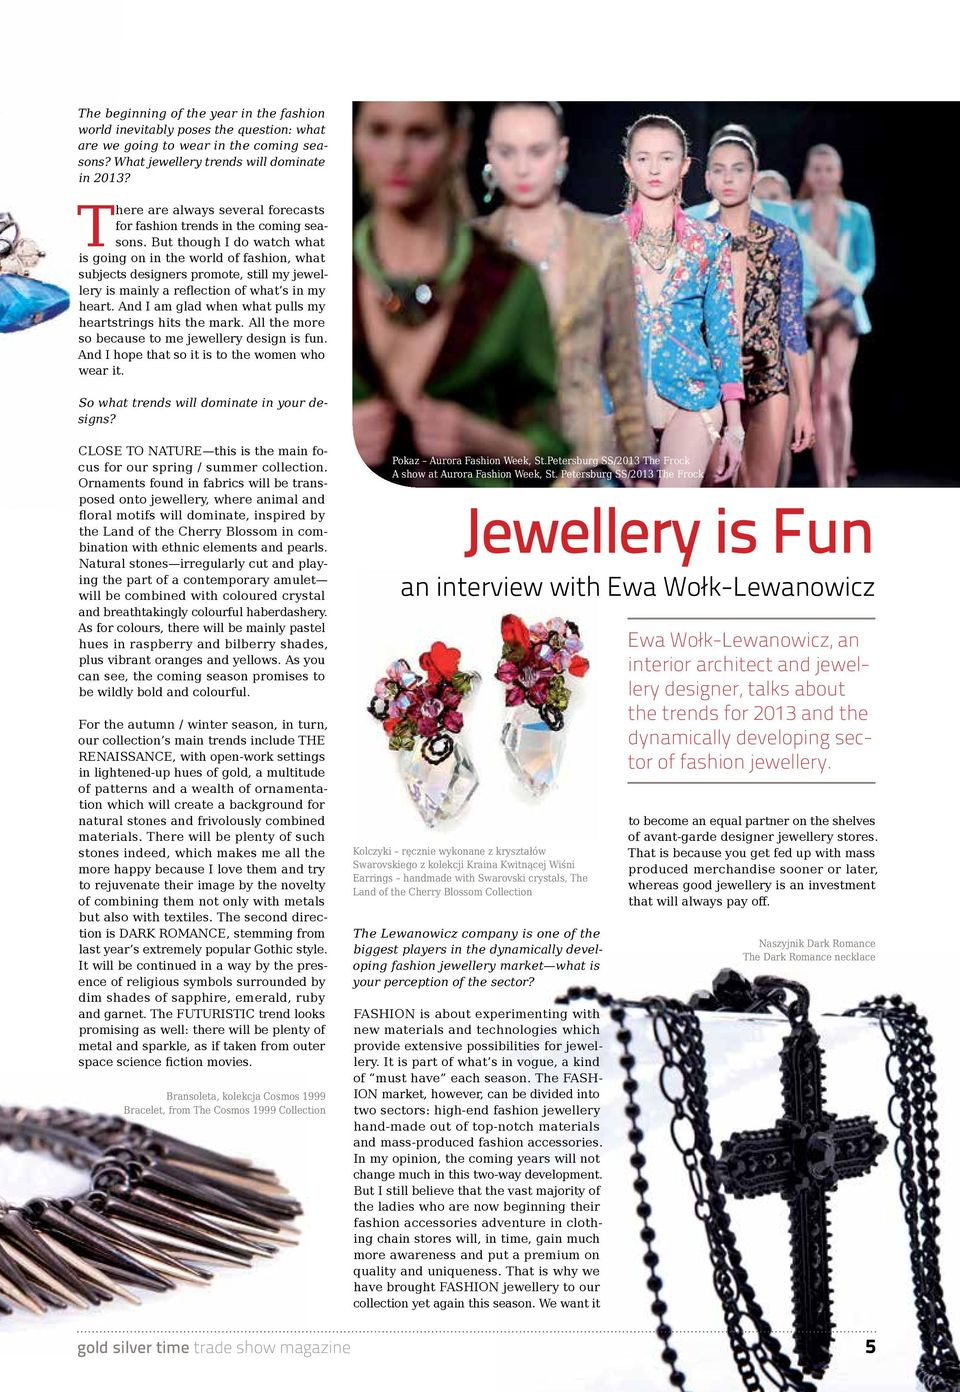 But though I do watch what is going on in the world of fashion, what subjects designers promote, still my jewellery is mainly a reflection of what s in my heart.